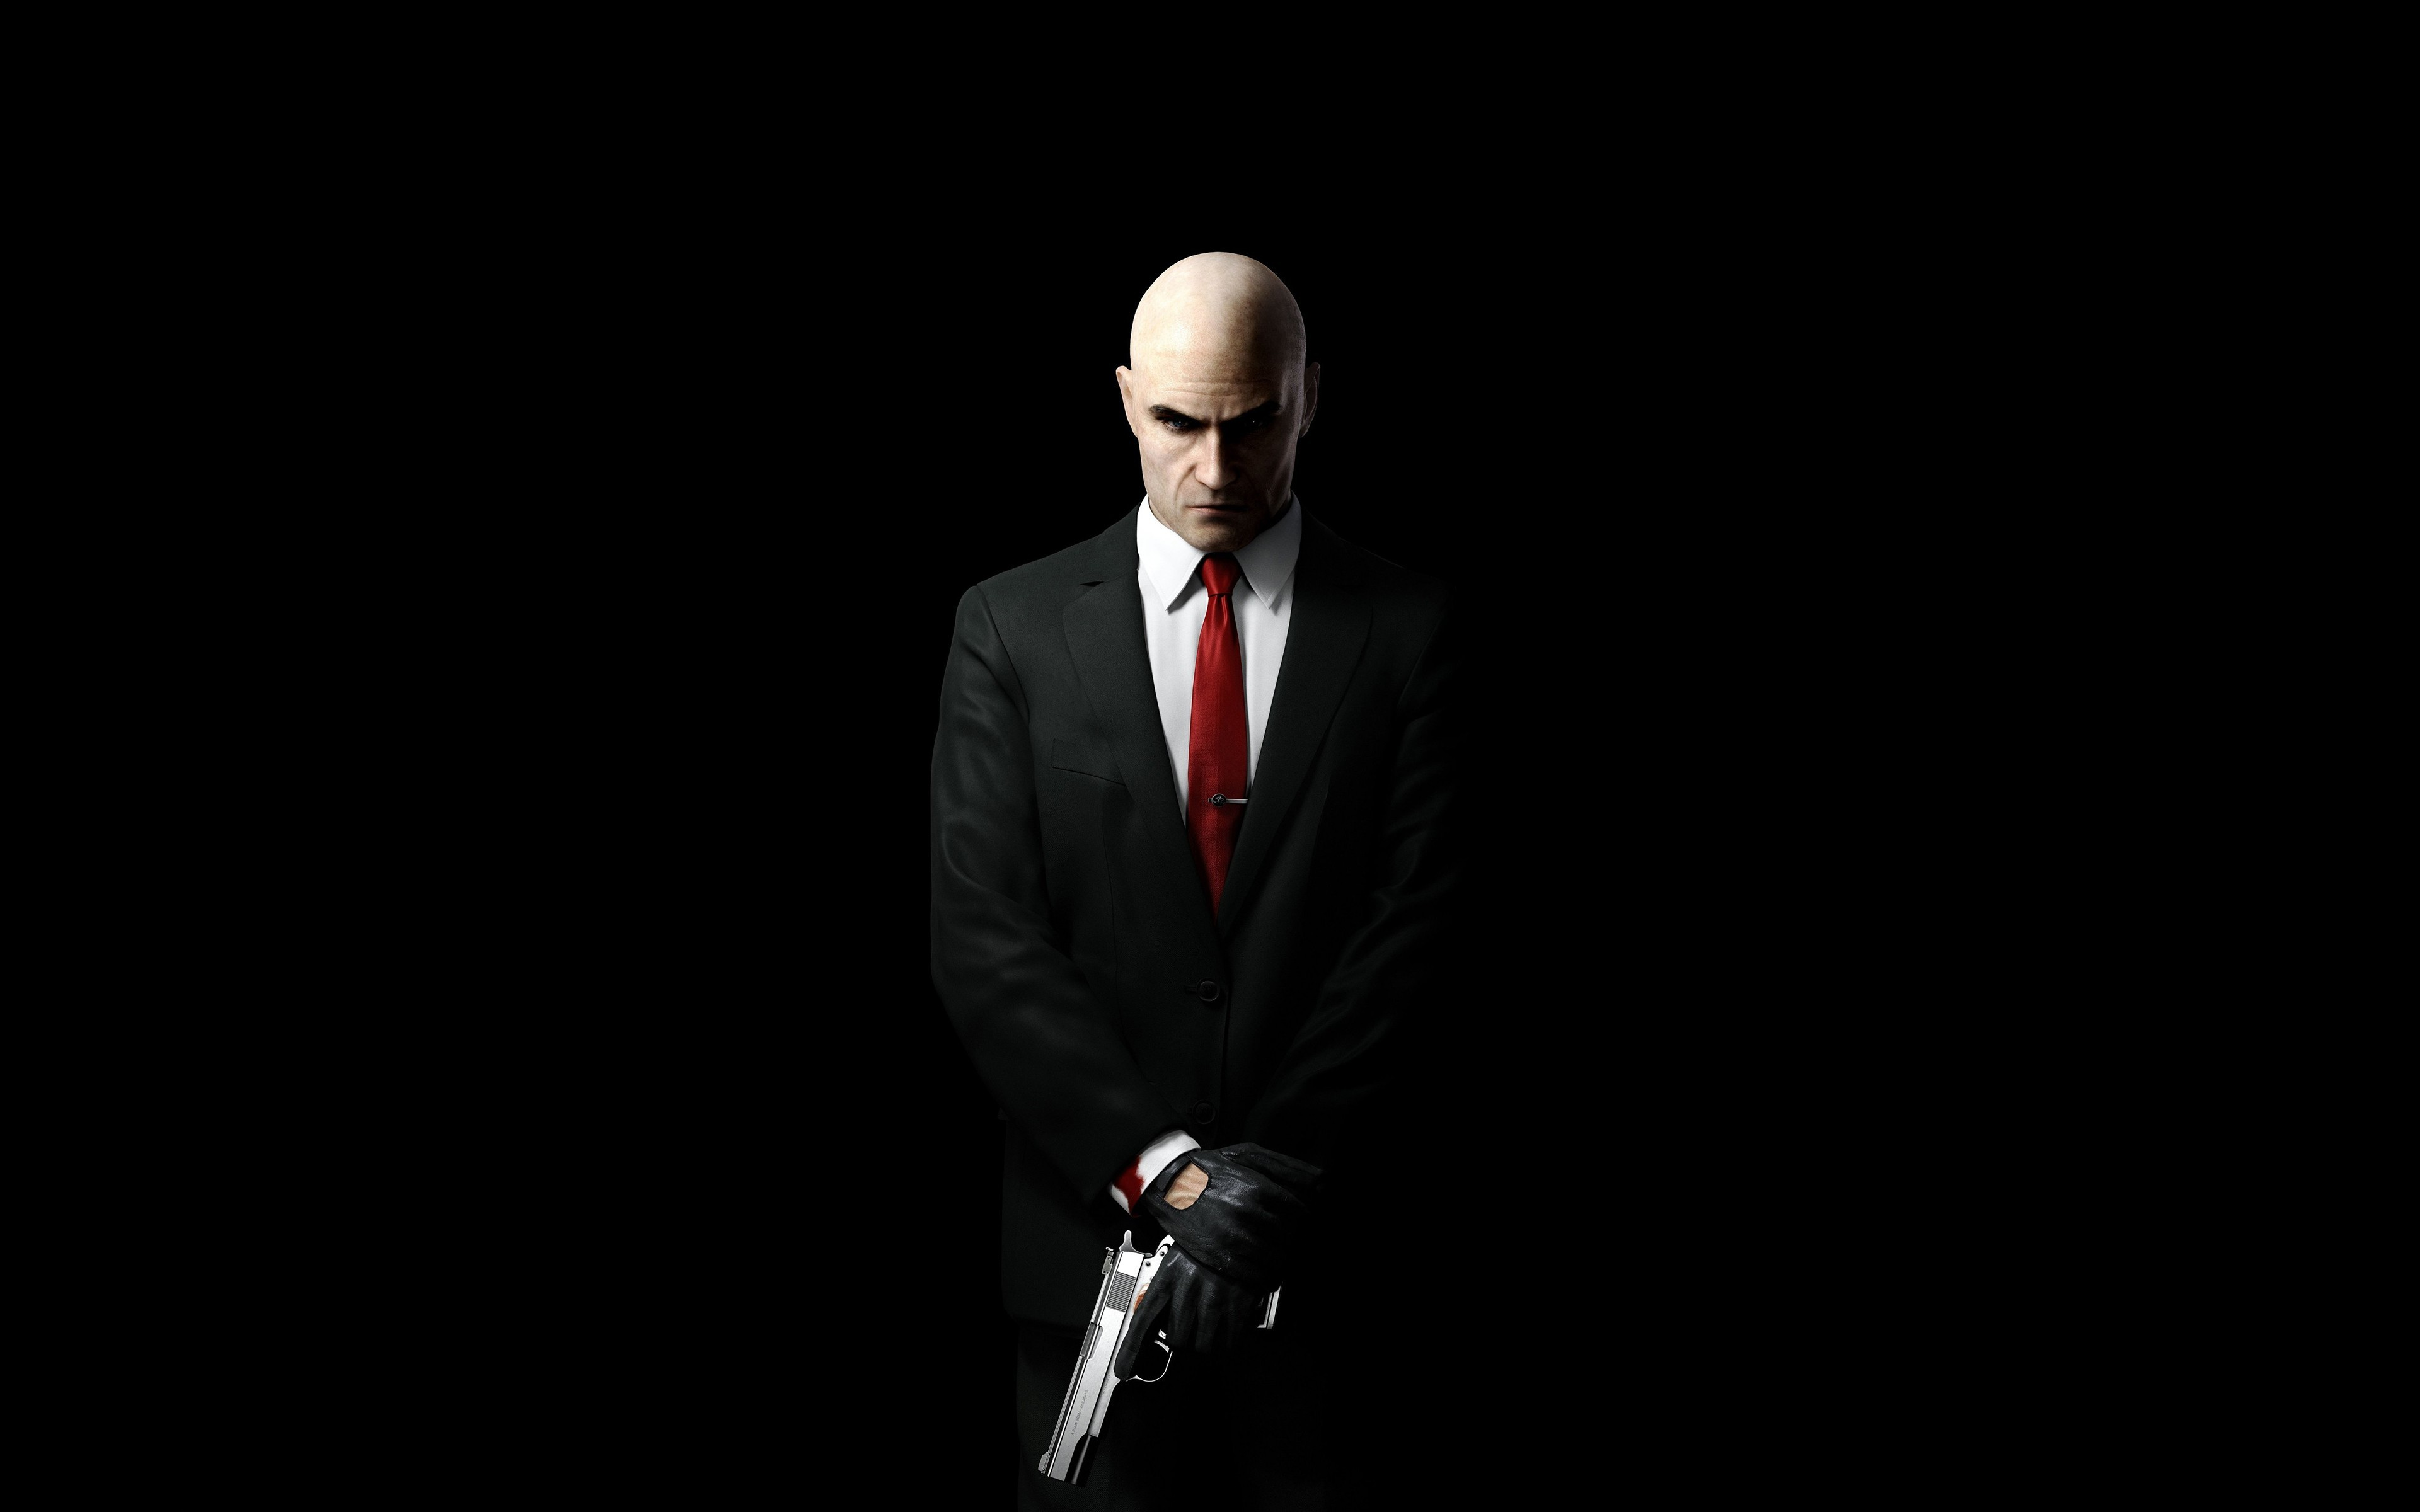 Cool Wallpapers For Boys Of Money And Cars Agent 47 Hitman Hitman Absolution Video Games Gun